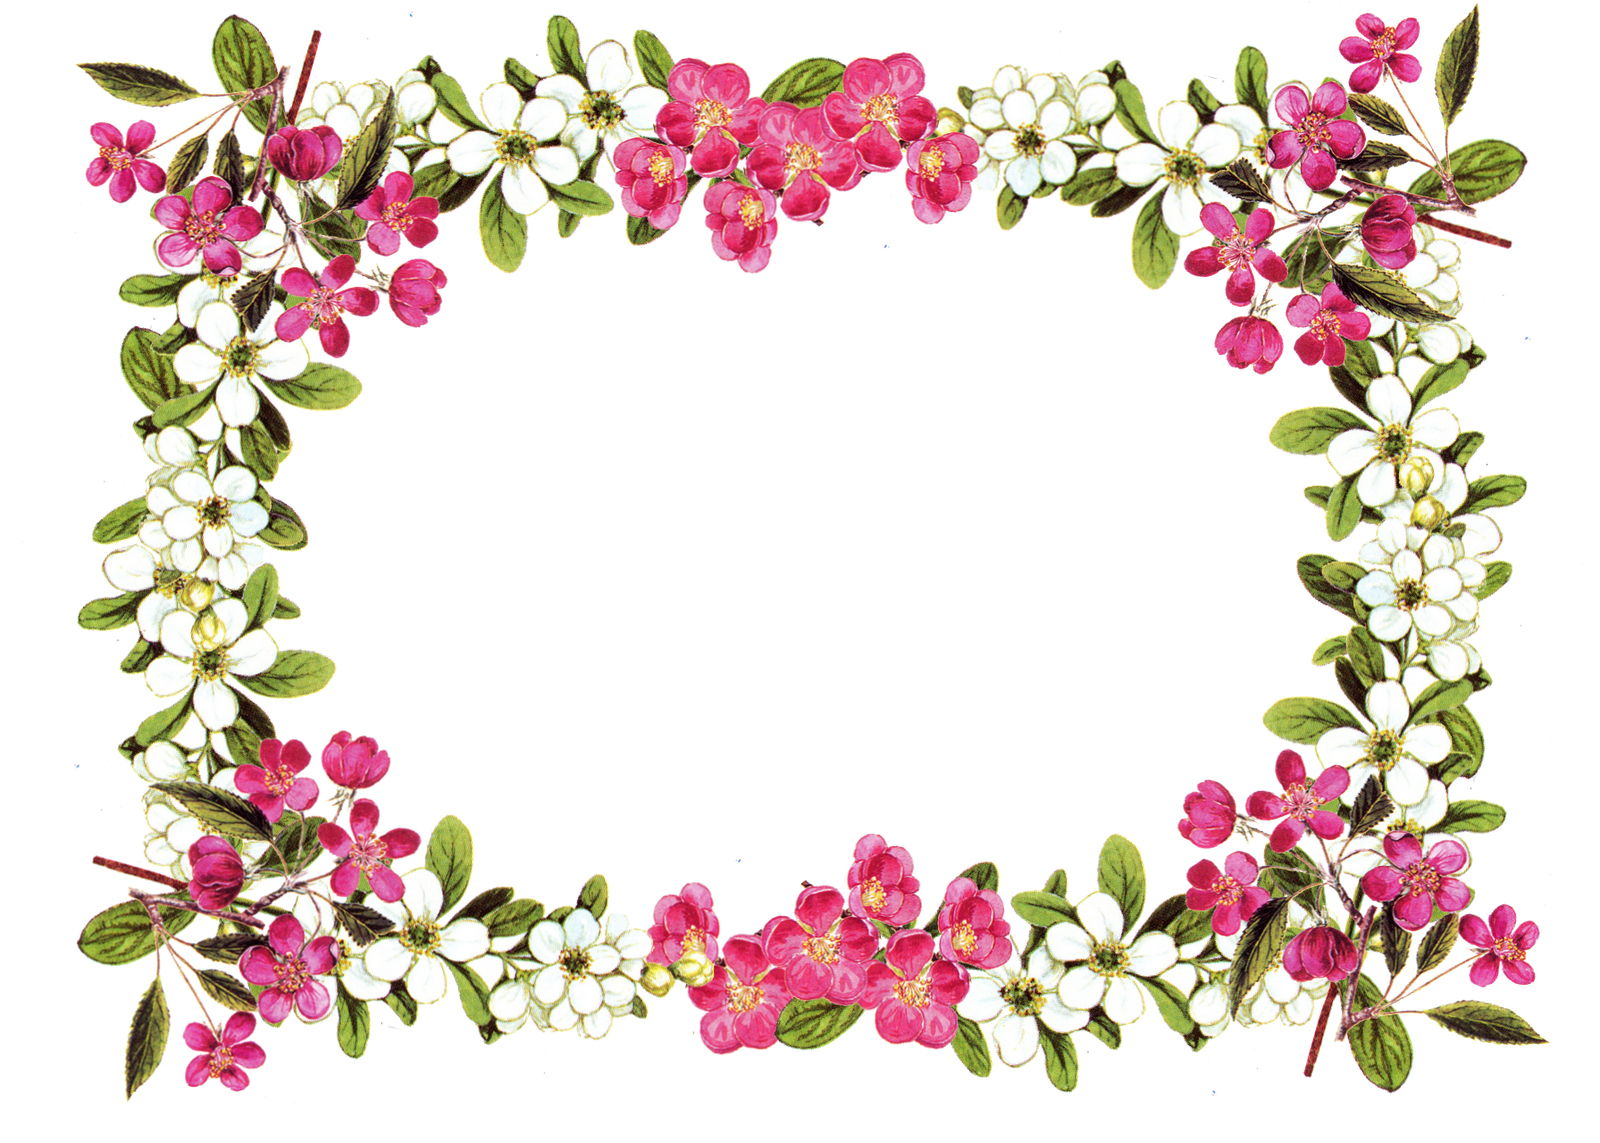 Pin kerawang kad kahwin border hawaii dermatology pictures images on - Pin Bingkai Background Bunga Pictures On Pinterest Free Printable Clip Art Borders Free Digital Flower